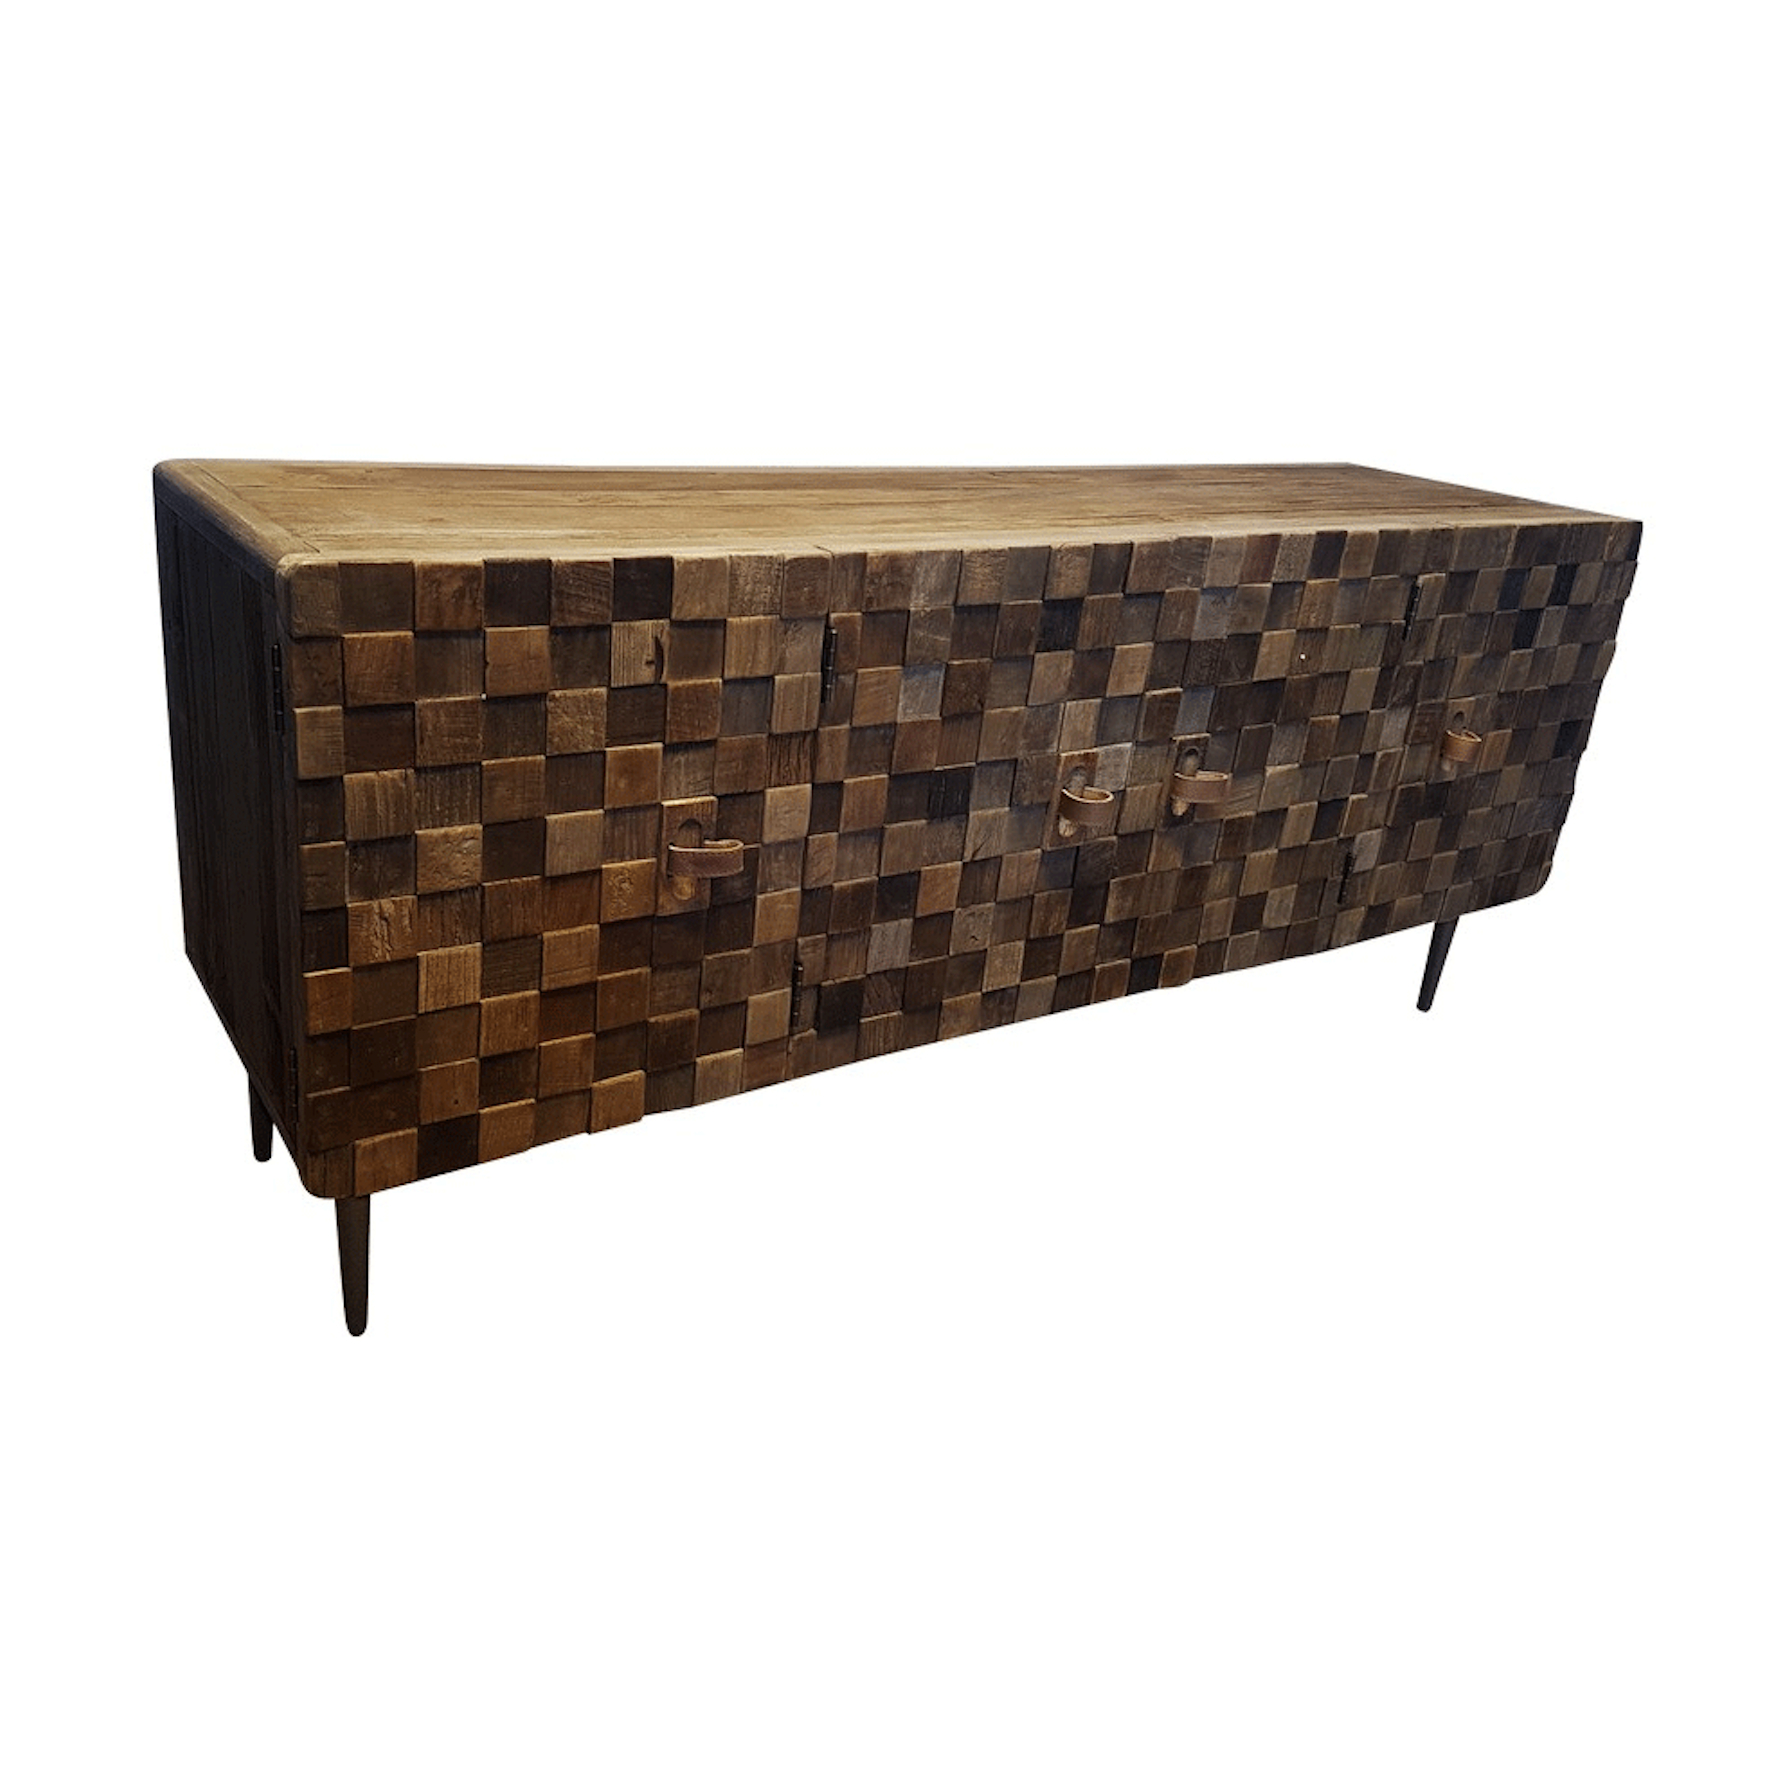 Baltic Sideboard – Reclaimed Elm/iron 2010Mm – Urbano Interiors With Regard To Most Recently Released Reclaimed Elm Iron Coffee Tables (Gallery 3 of 20)